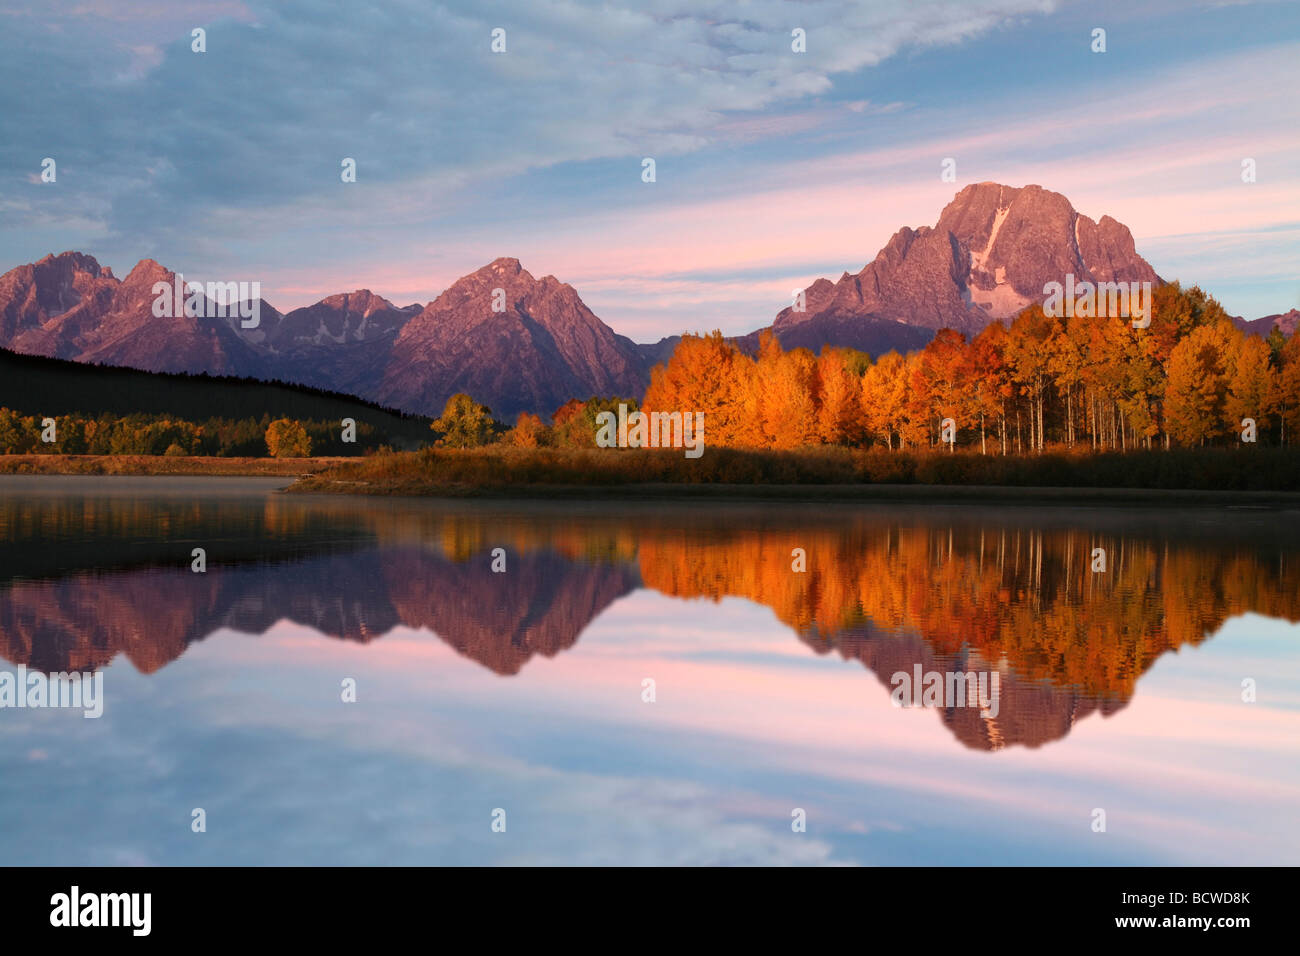 Reflection of mountain and trees in a river, Oxbow Bend, Snake River, Grand Teton National Park, Wyoming, USA - Stock Image